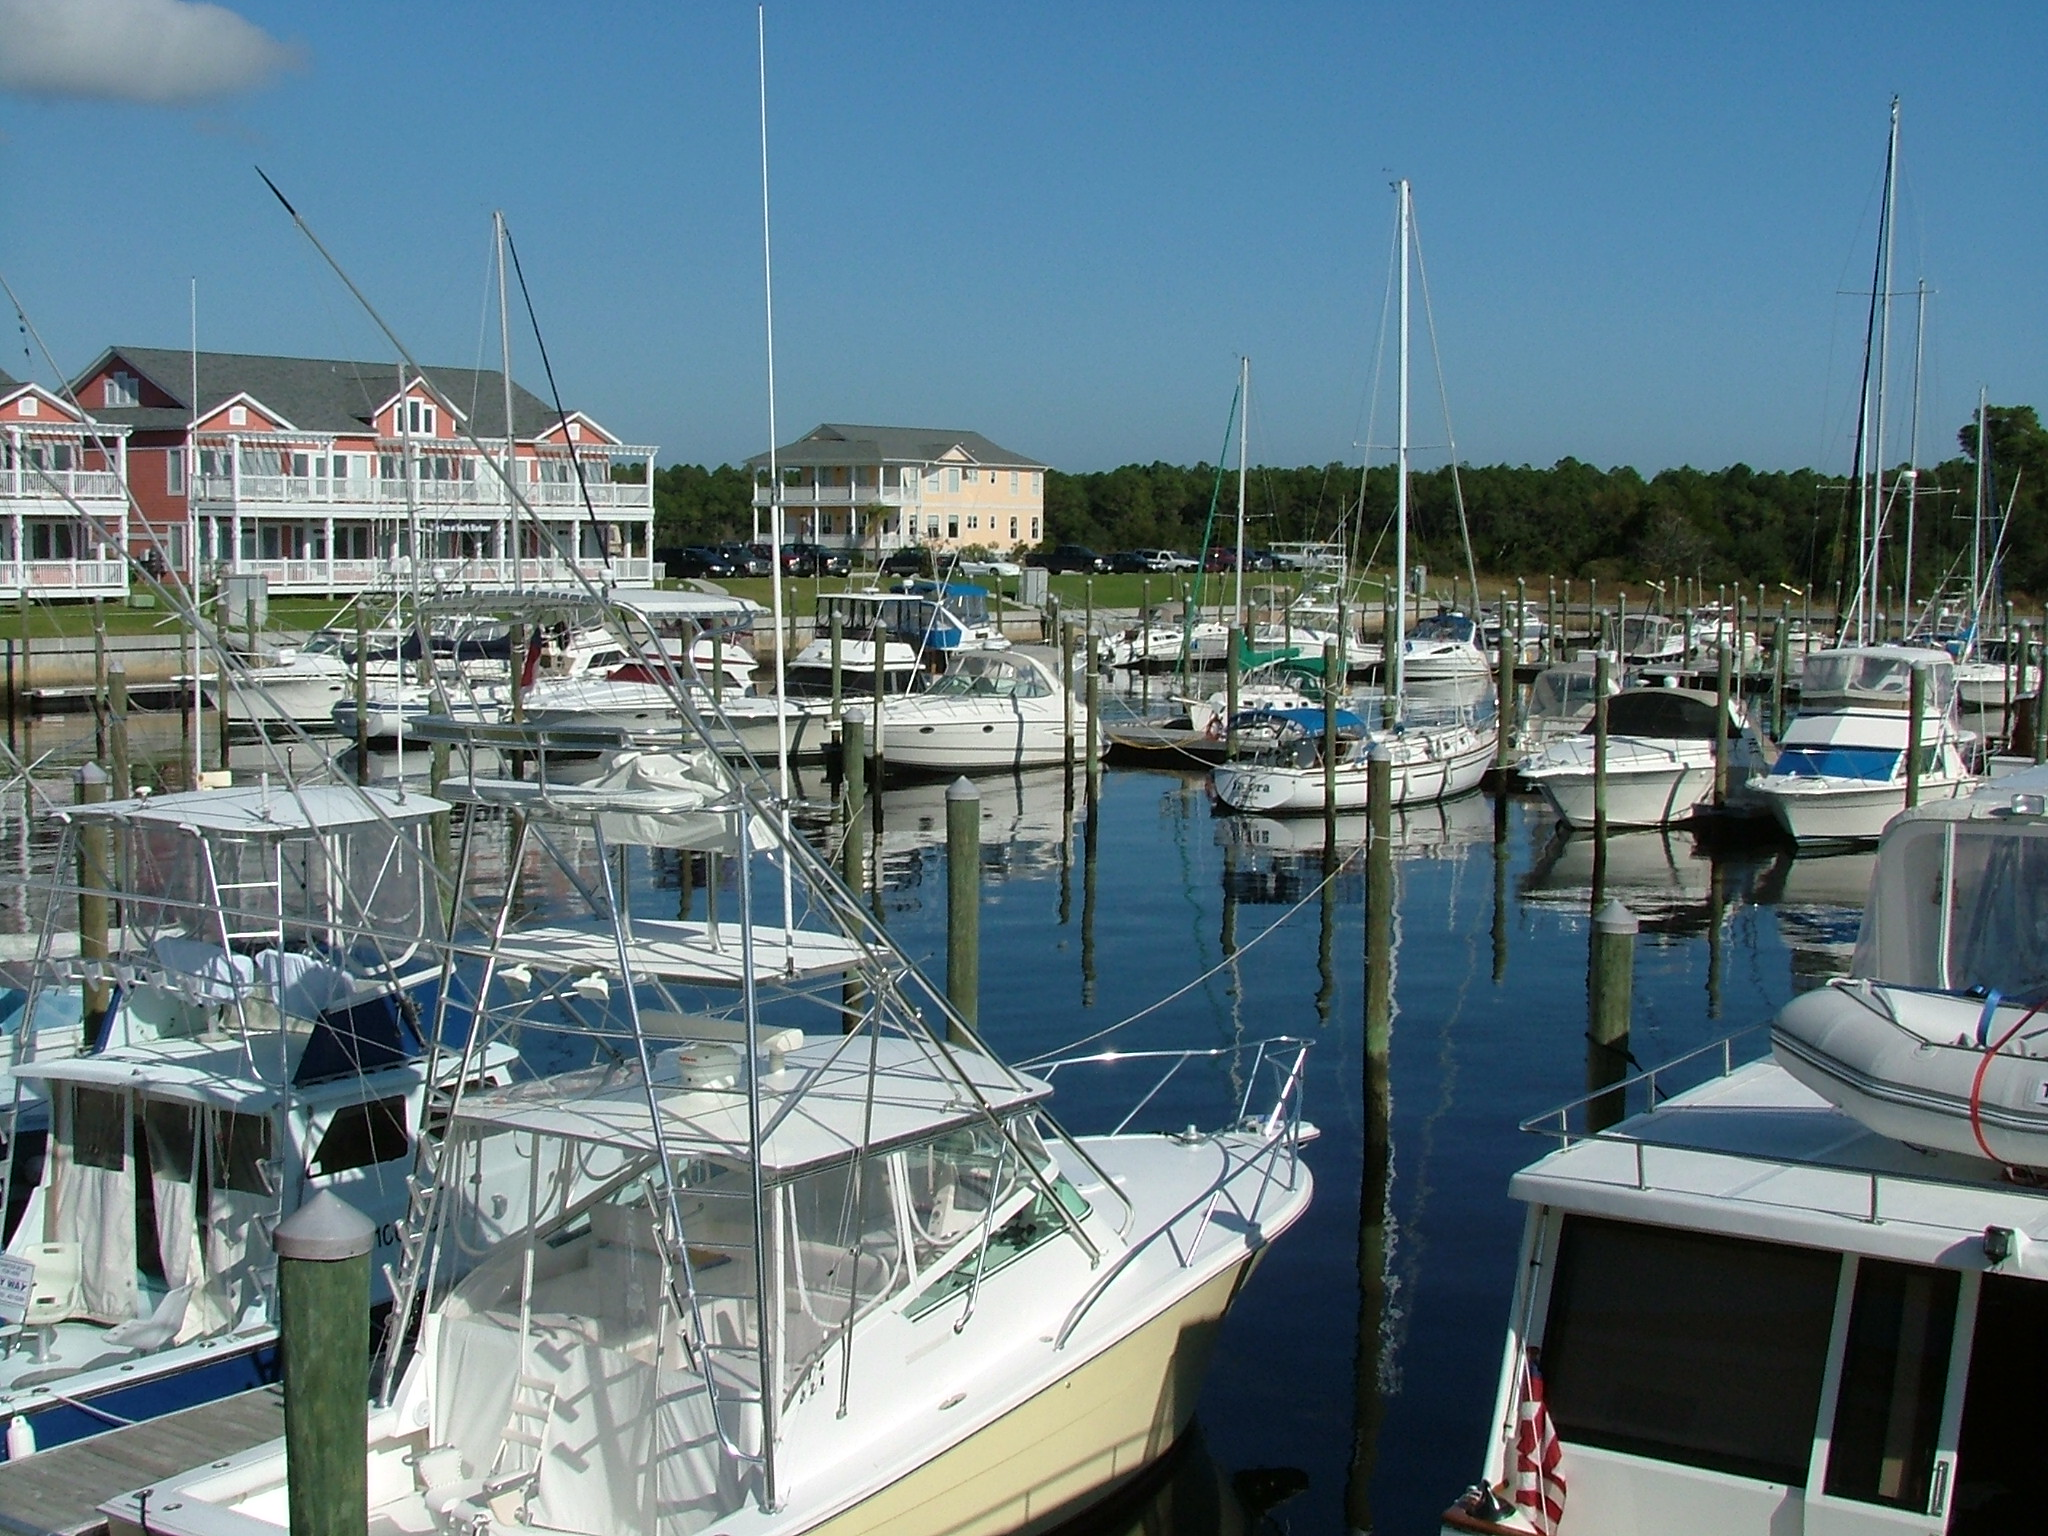 South Harbor Marina